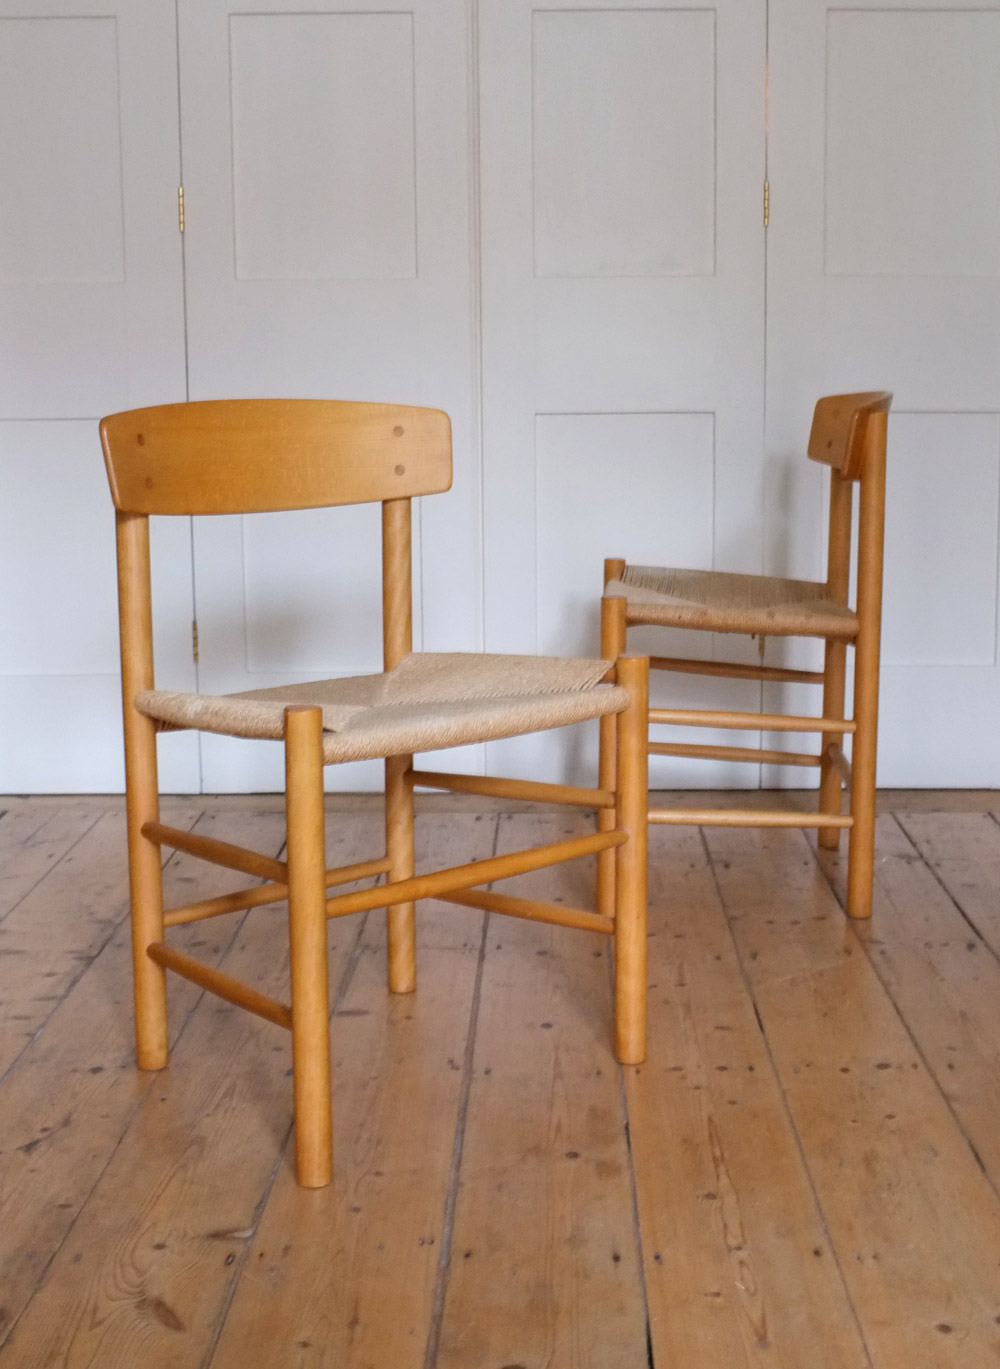 J39 shaker chairs by Borge Mogensen